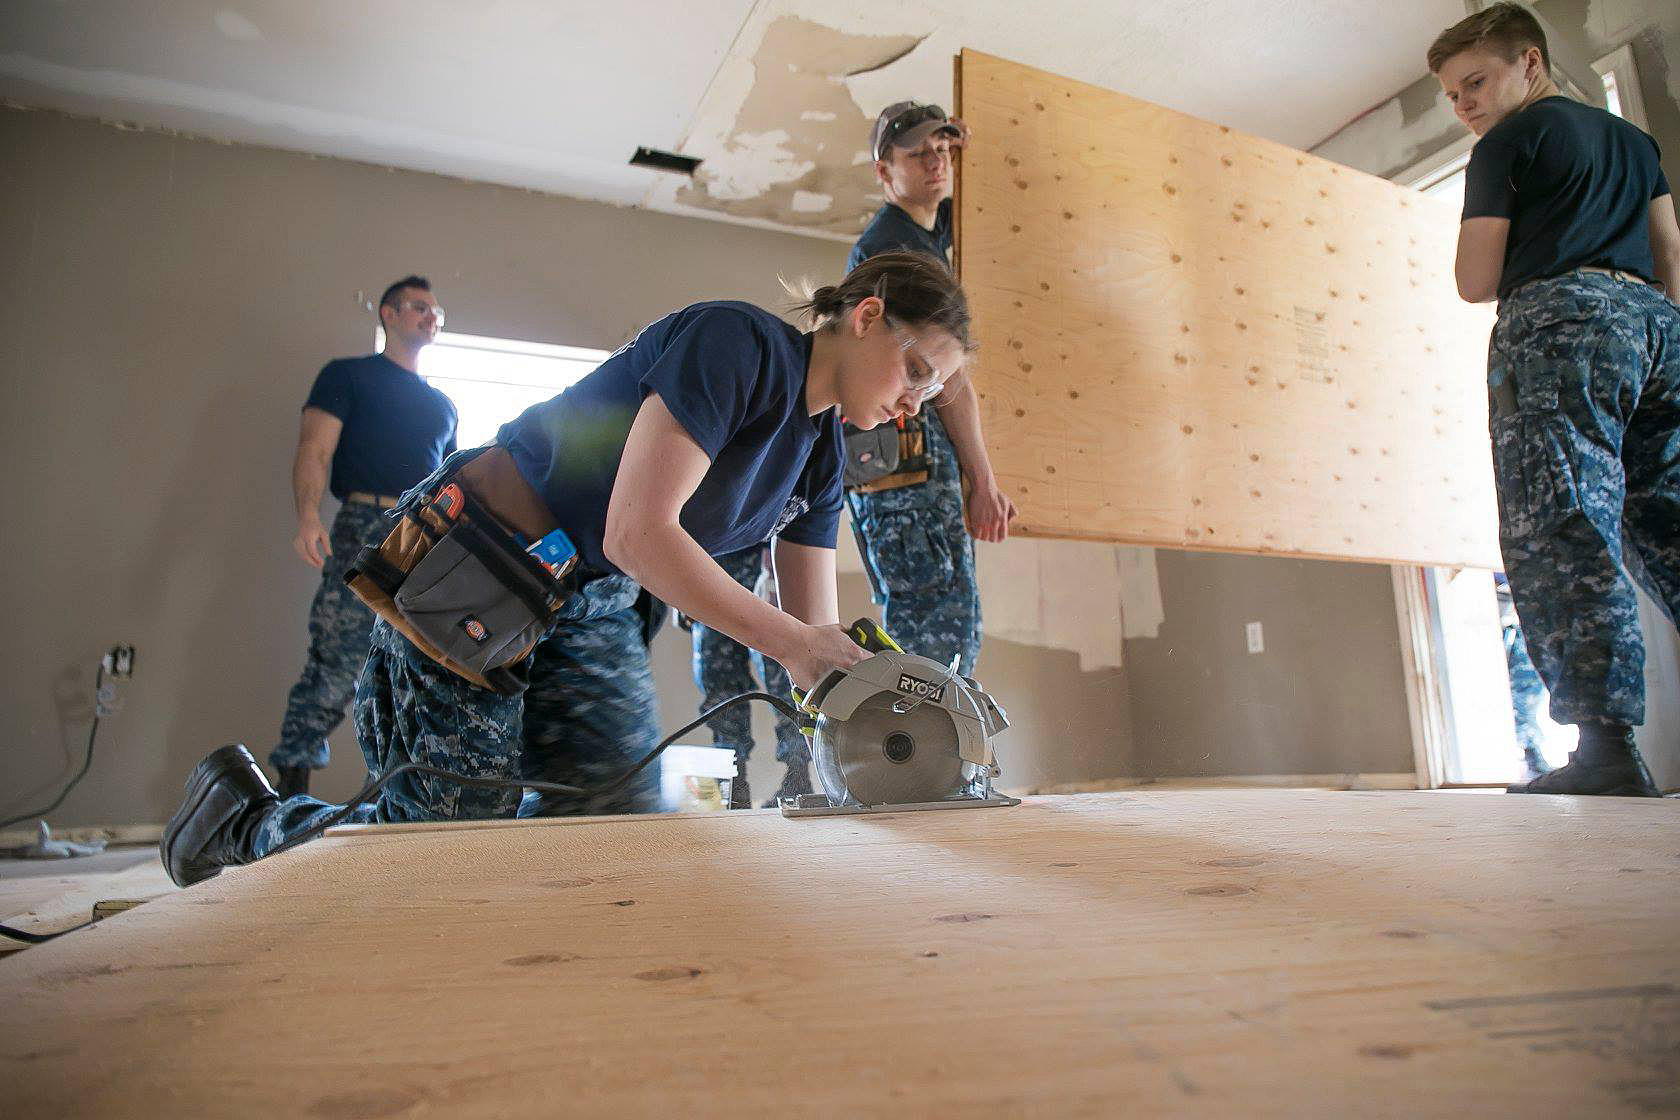 The U.S. Naval Academy contributed volunteers to Hurricane Harvey recovery work in Rockport, Texas, this past March, during the school's spring break. The Rio Texas Conference provided case management support for the project the Midshipmen helped with. Photo courtesy of the Rio Texas Conference.